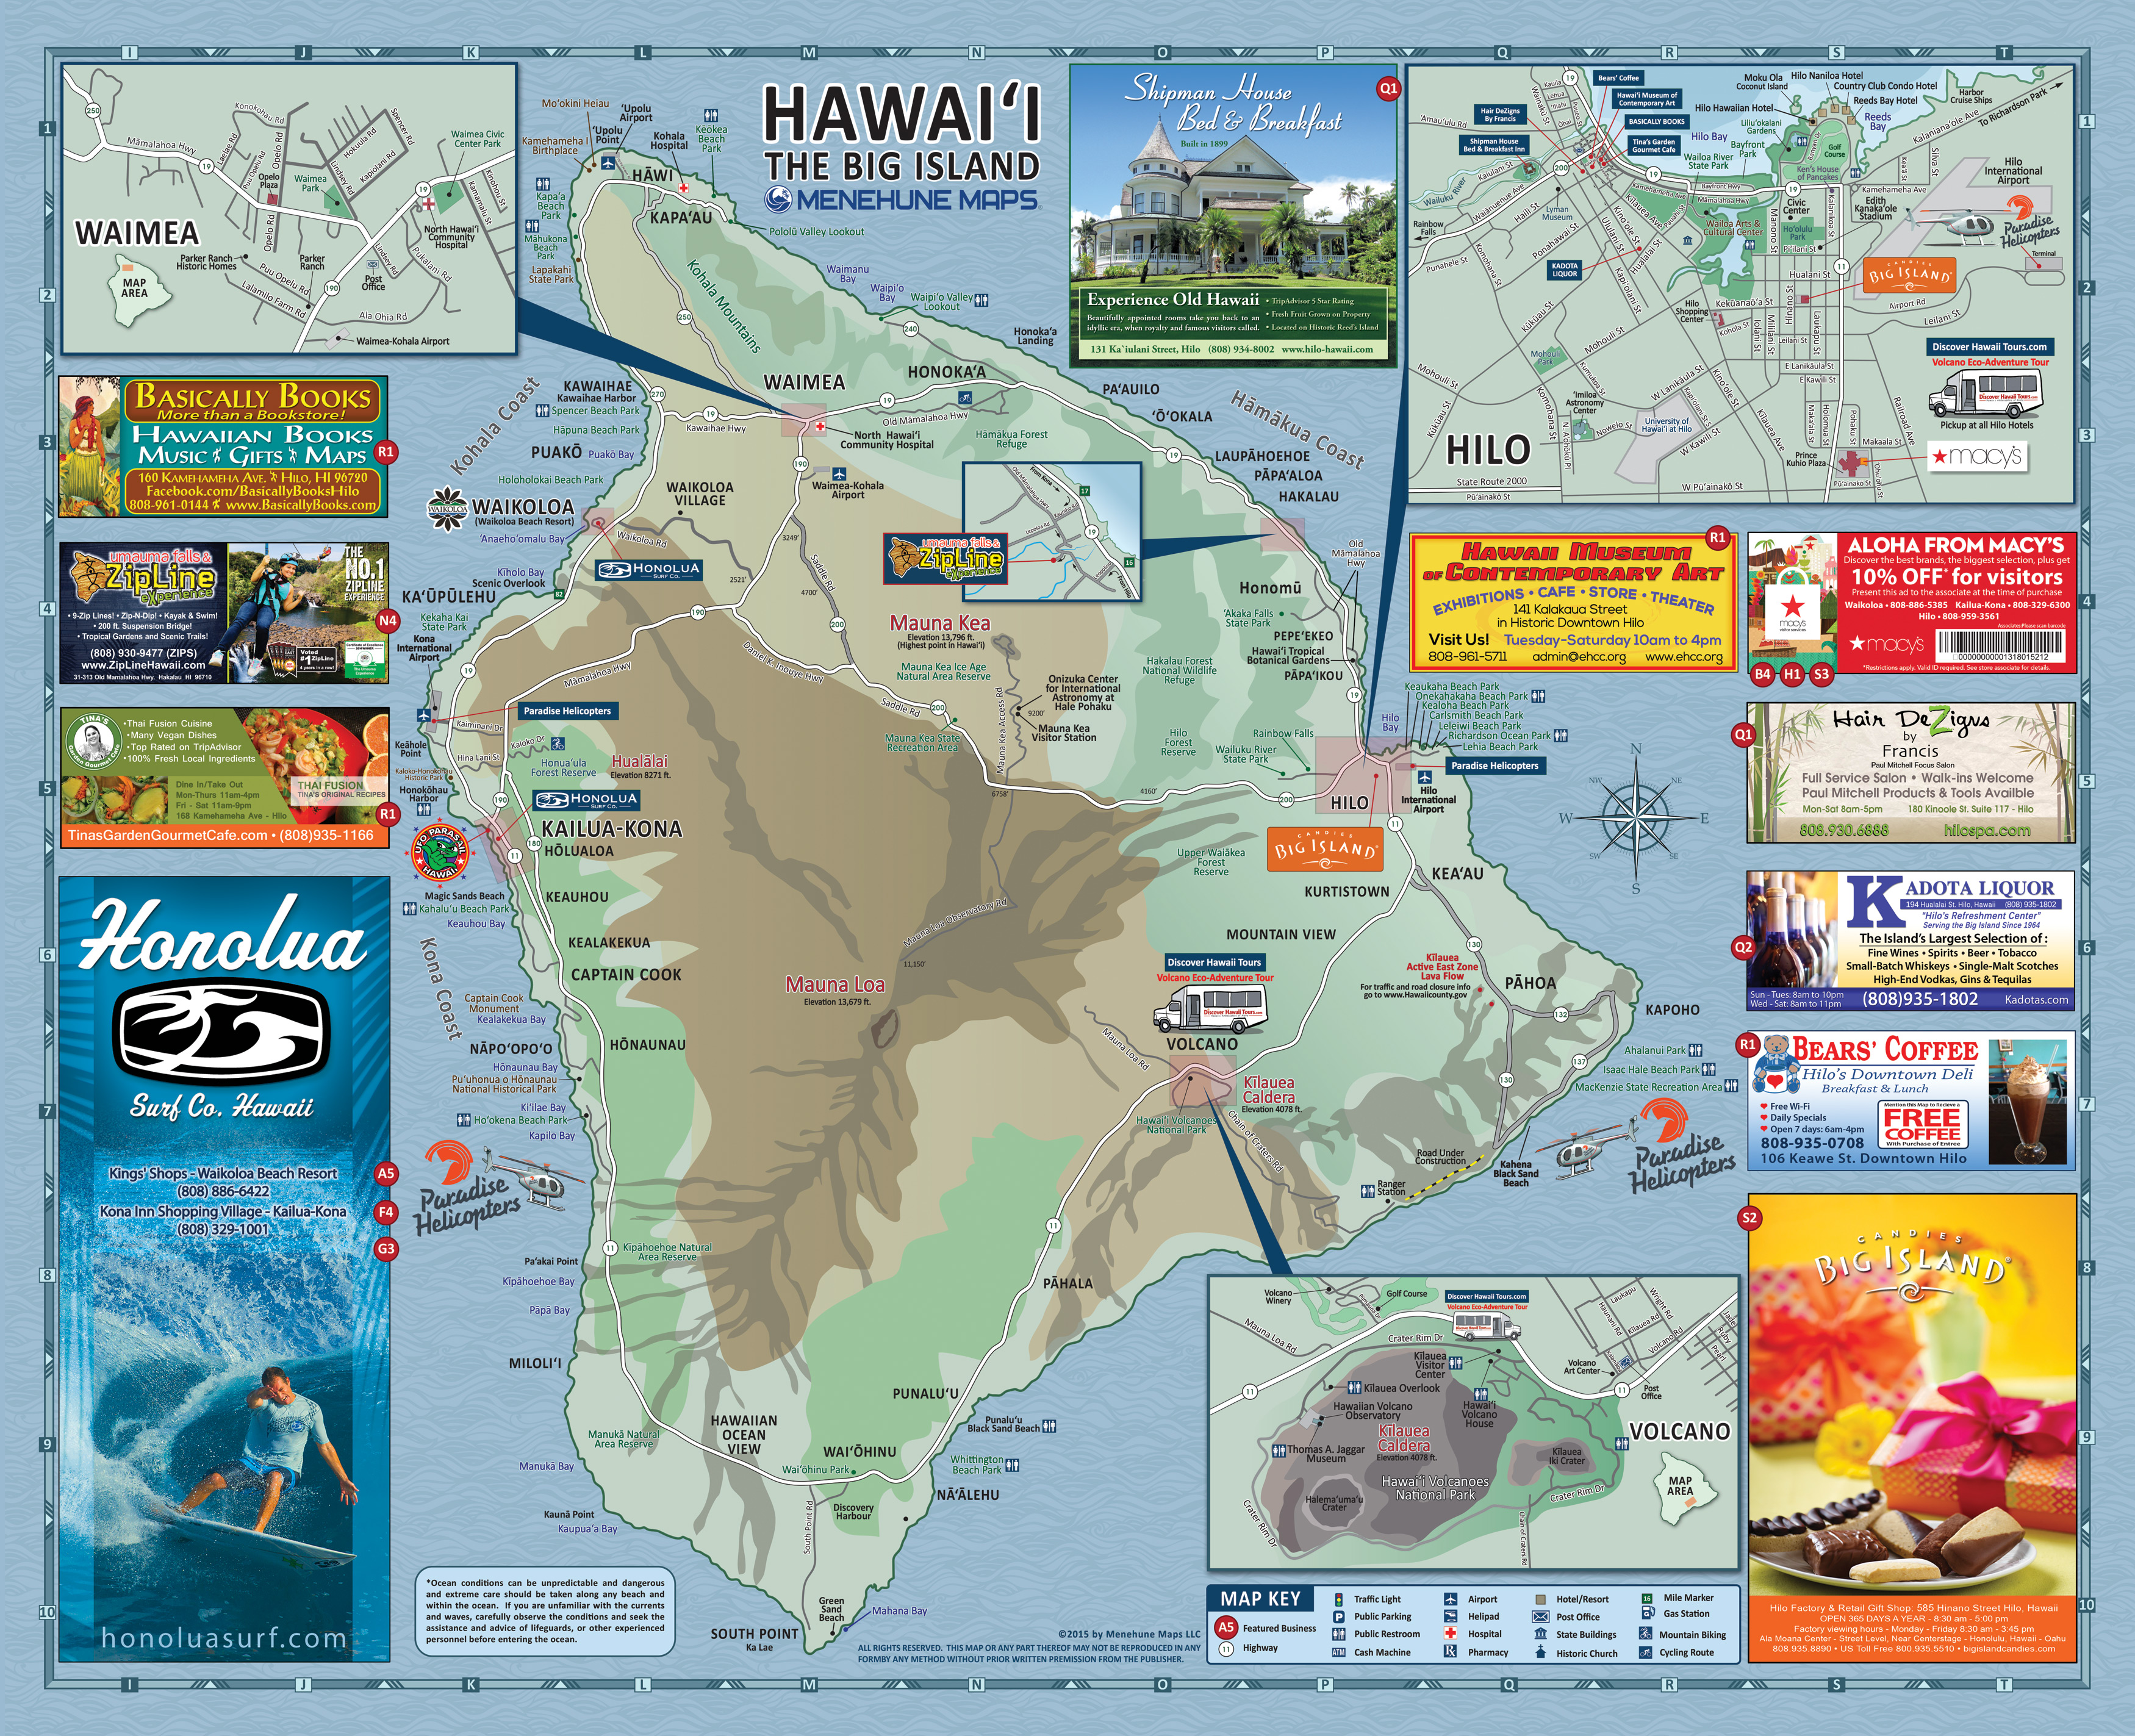 blue hawaiian helicopters kona with Free Maps on Page11 also Big Island Helicopter Tours together with Bigisland hawaiidiscountactivities in addition Top Things Hawaii likewise June 27 Lava Flow Update 102714.